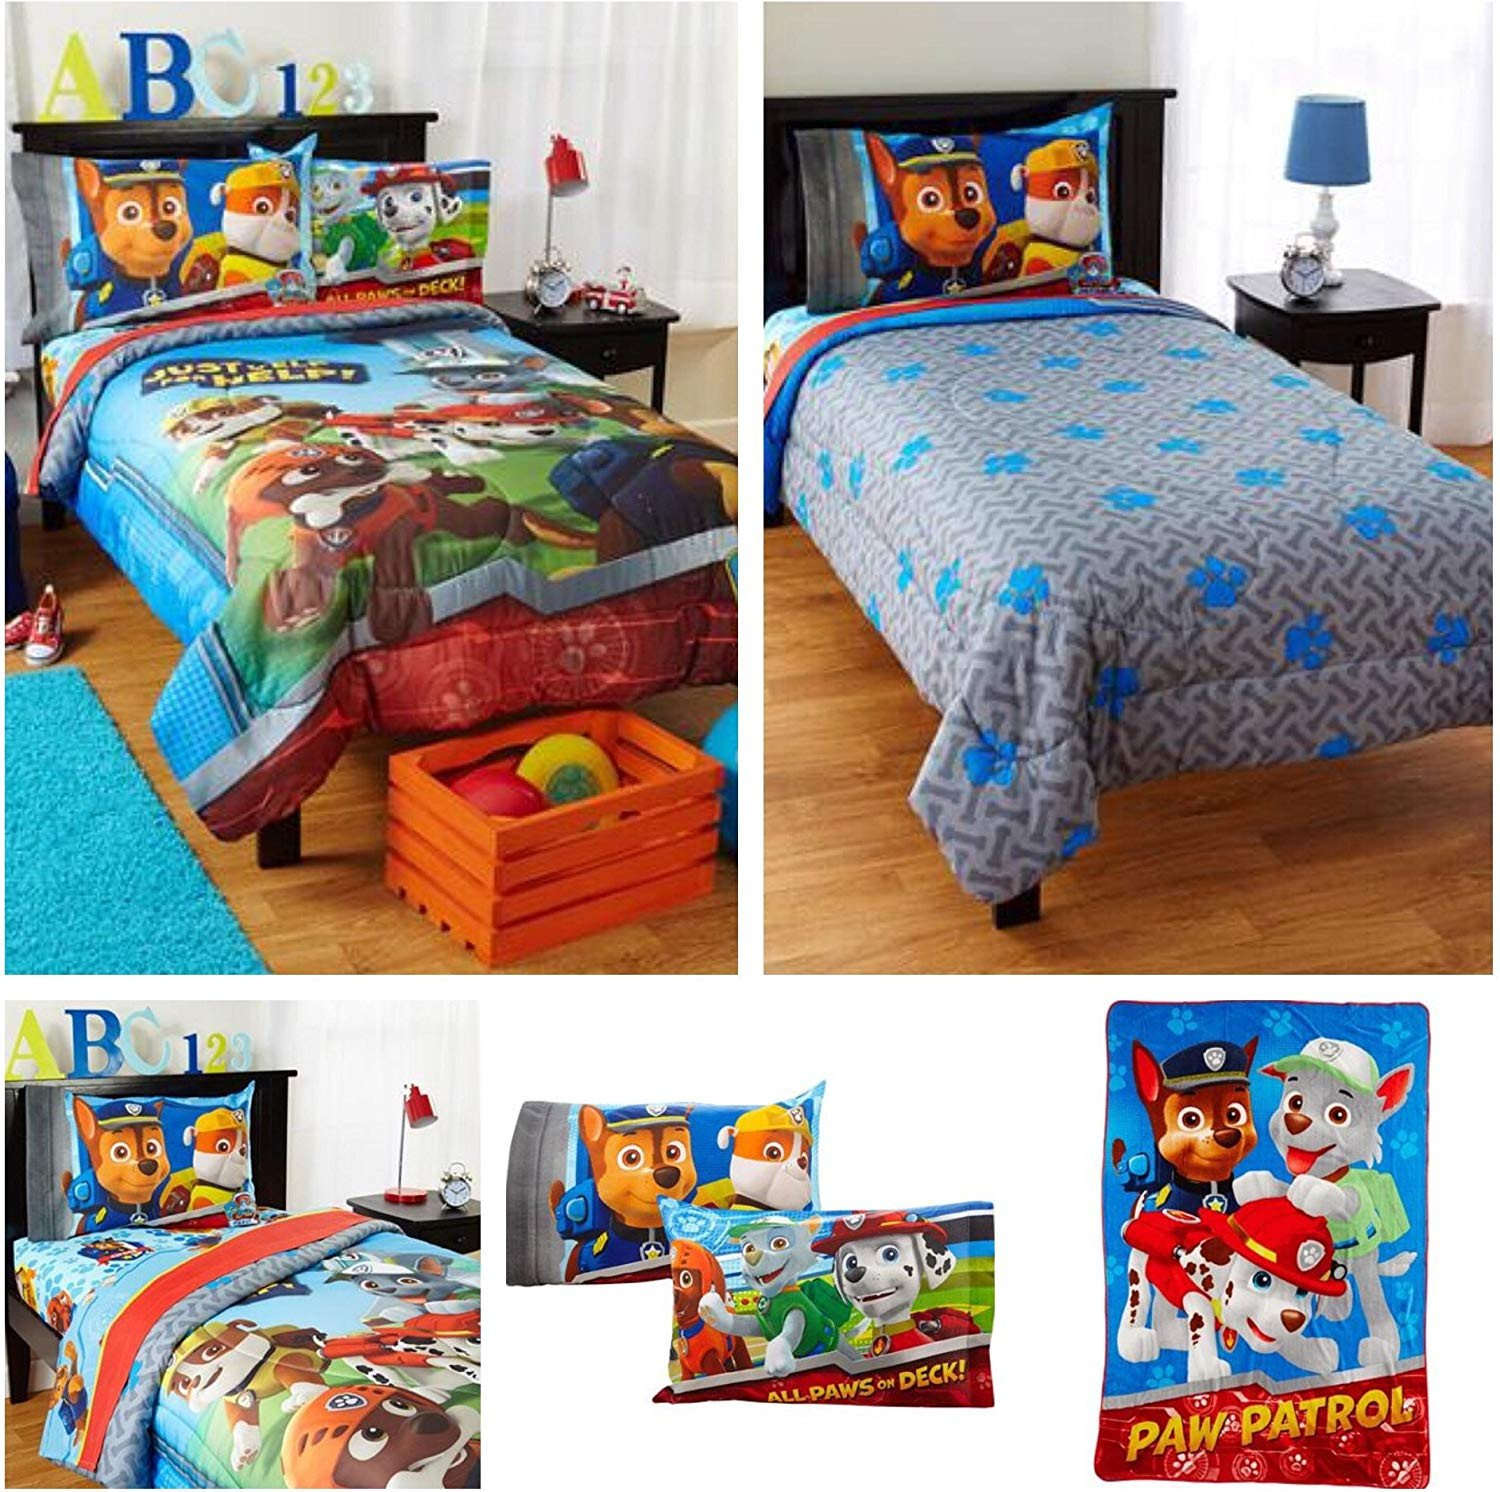 Paw Patrol Bedroom Decor Awesome Amazon Nickelodeon Paw Patrol Kids Bed In A Bag Bedding